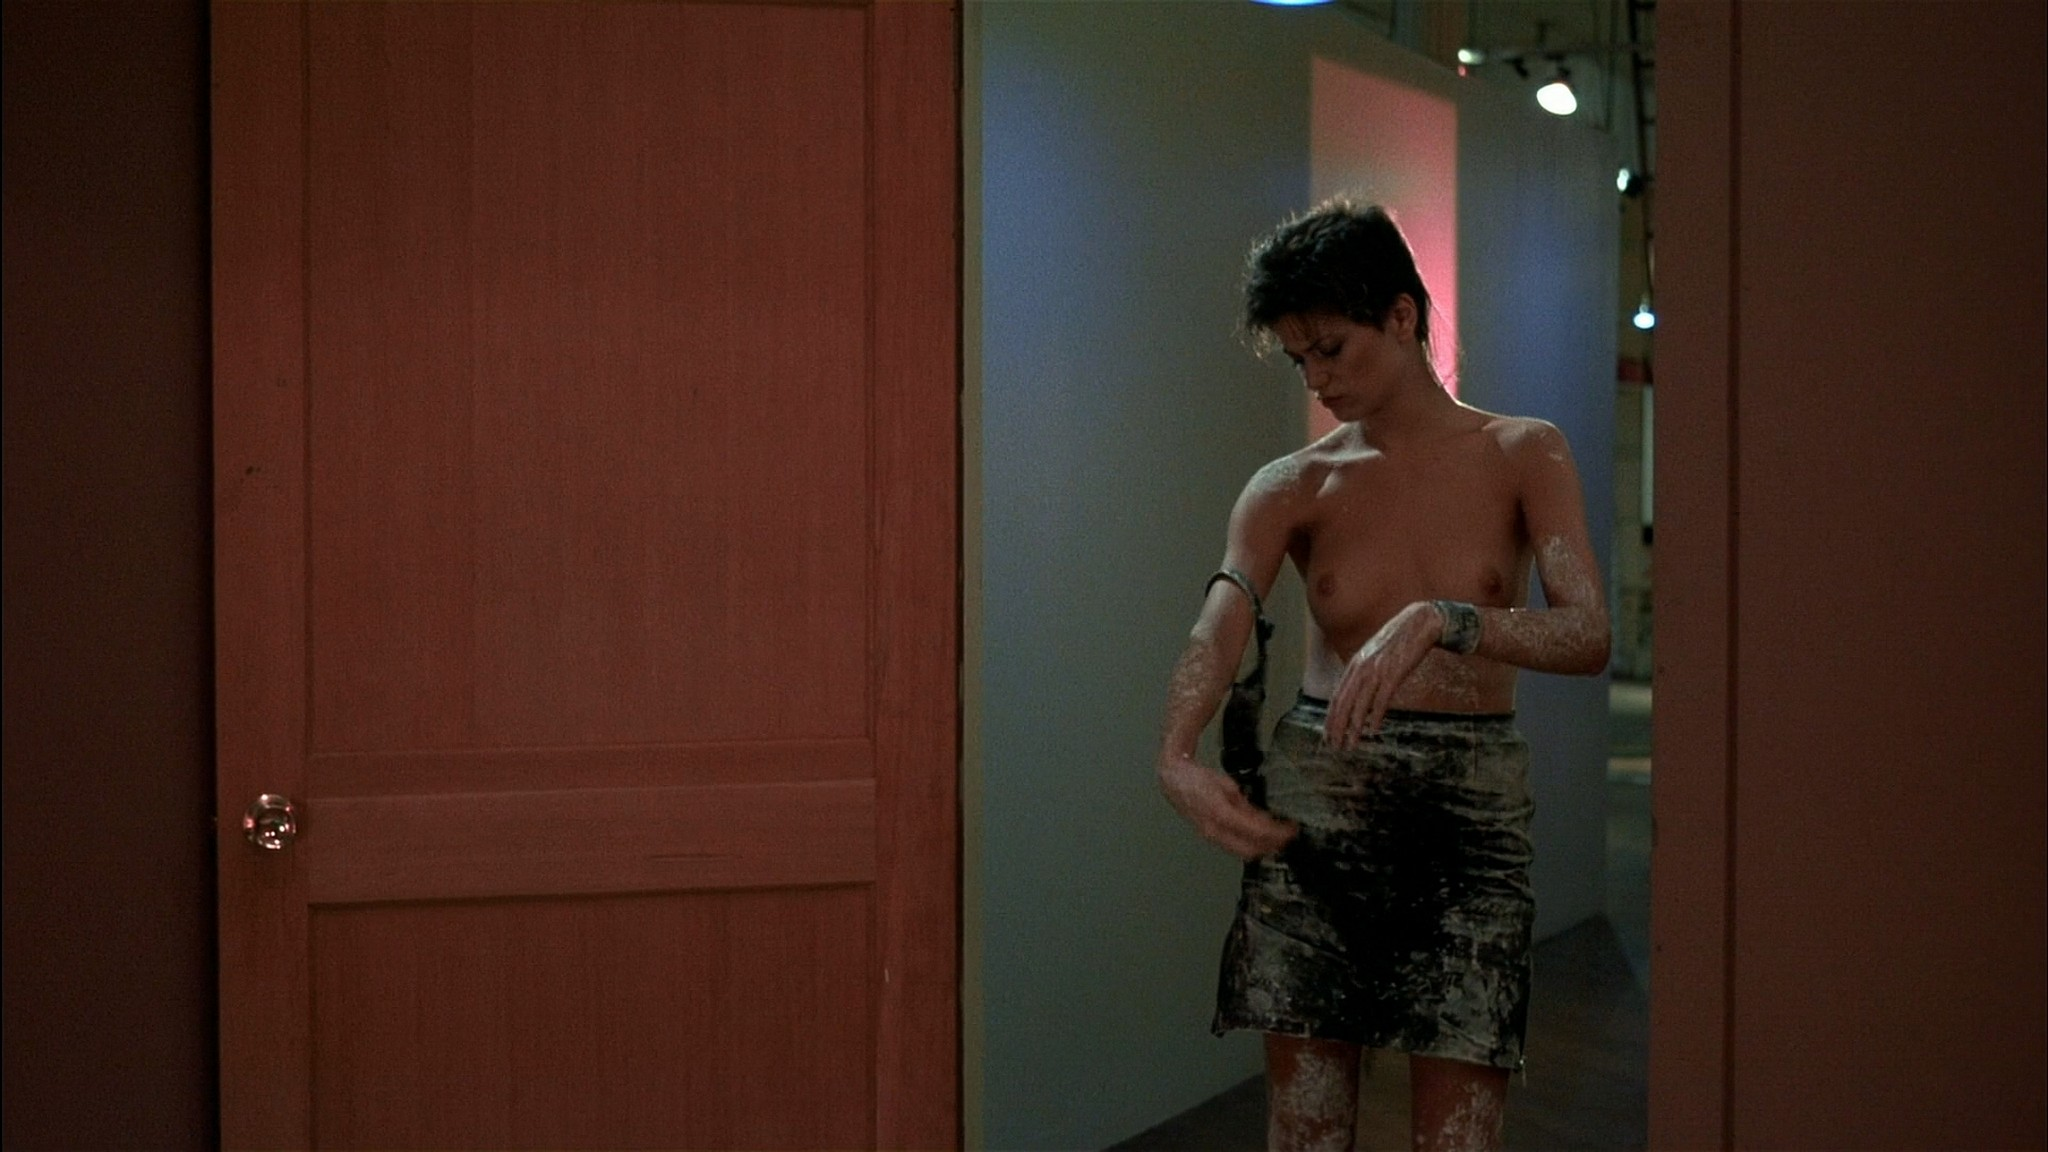 Linda Fiorentino nude Rosanna Arquette hot and sexy - After Hours (1985) HD 1080p BluRay (8)